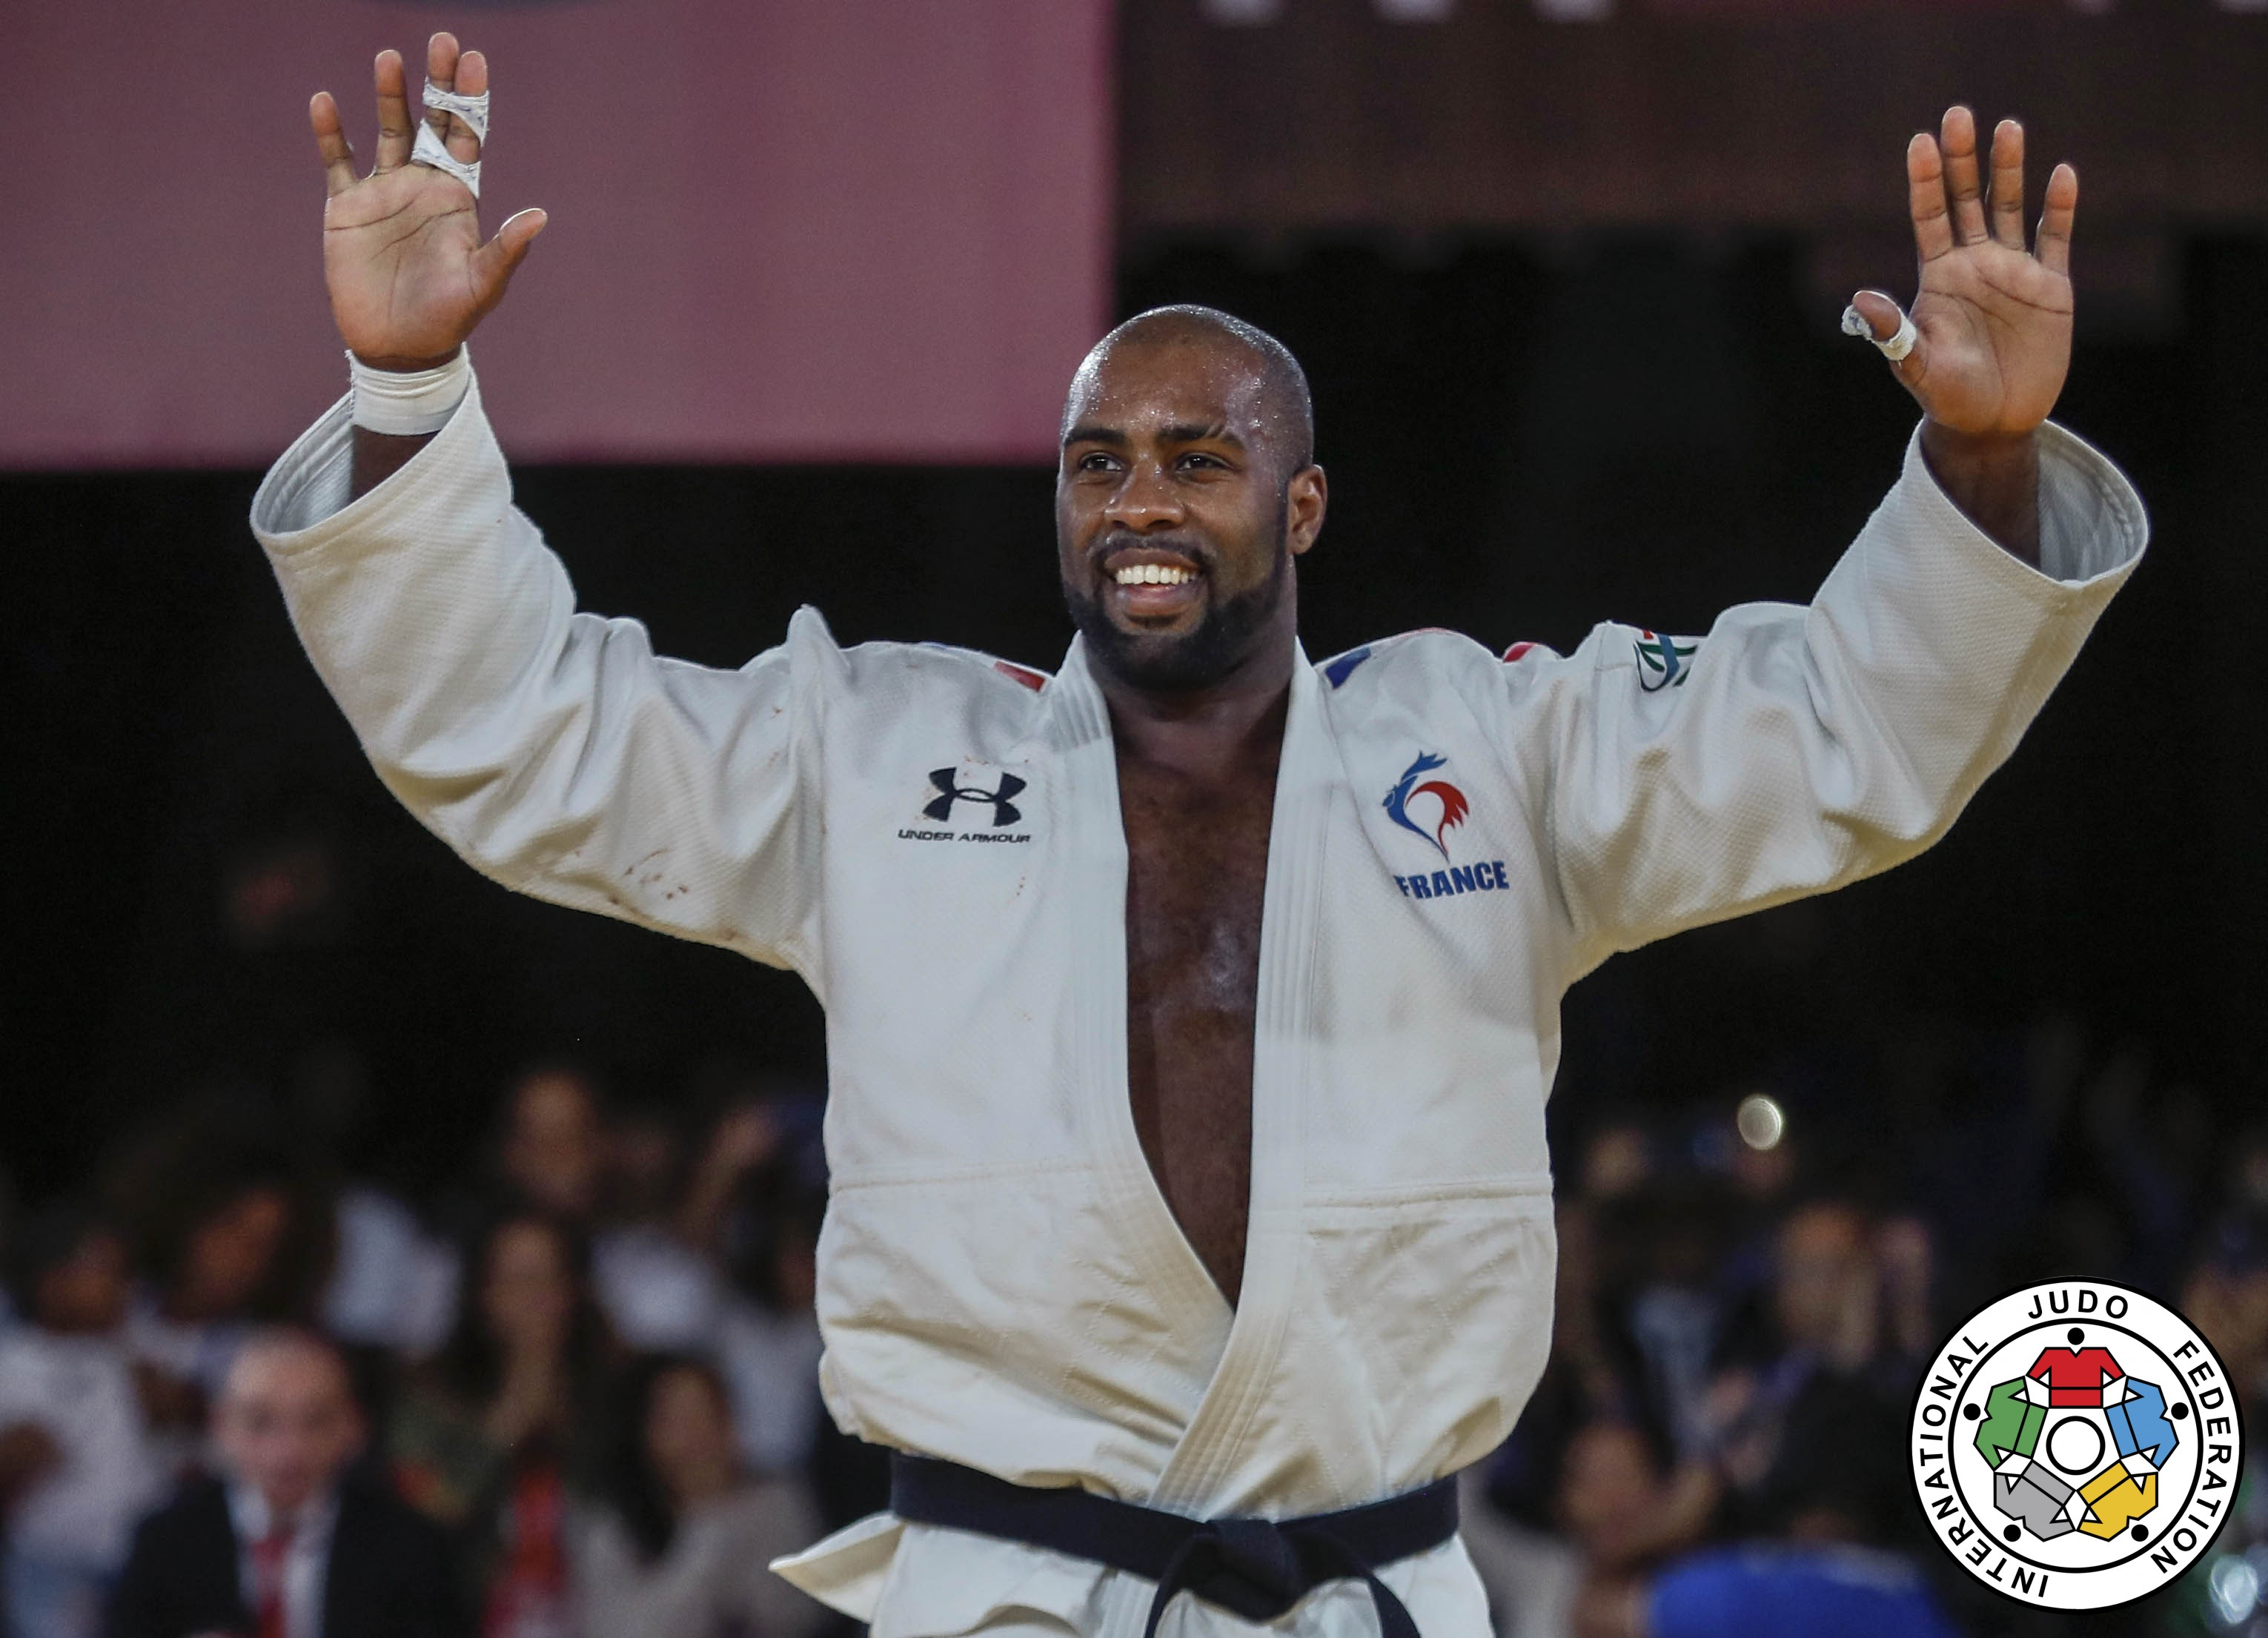 teddy riner champion du monde pour la 10e fois f d ration fran aise de judo. Black Bedroom Furniture Sets. Home Design Ideas